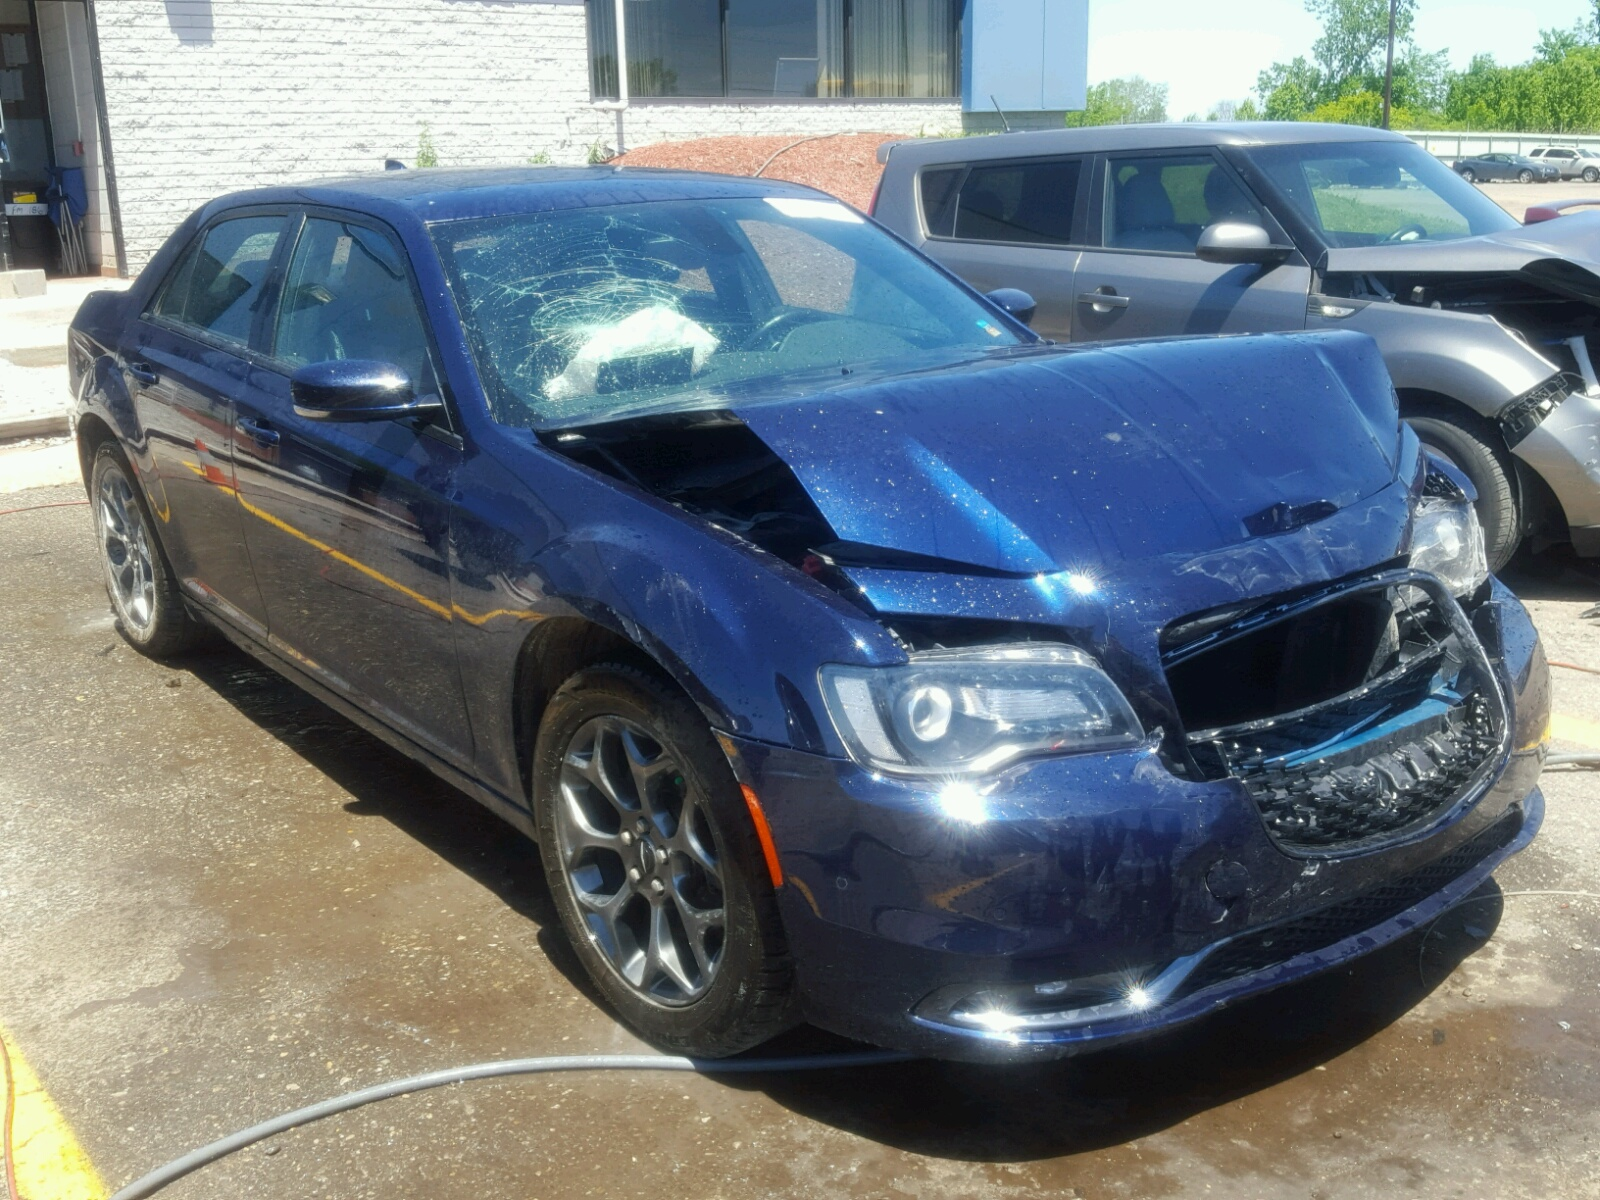 2015 Chrysler 300 S for sale at Copart Woodhaven MI Lot